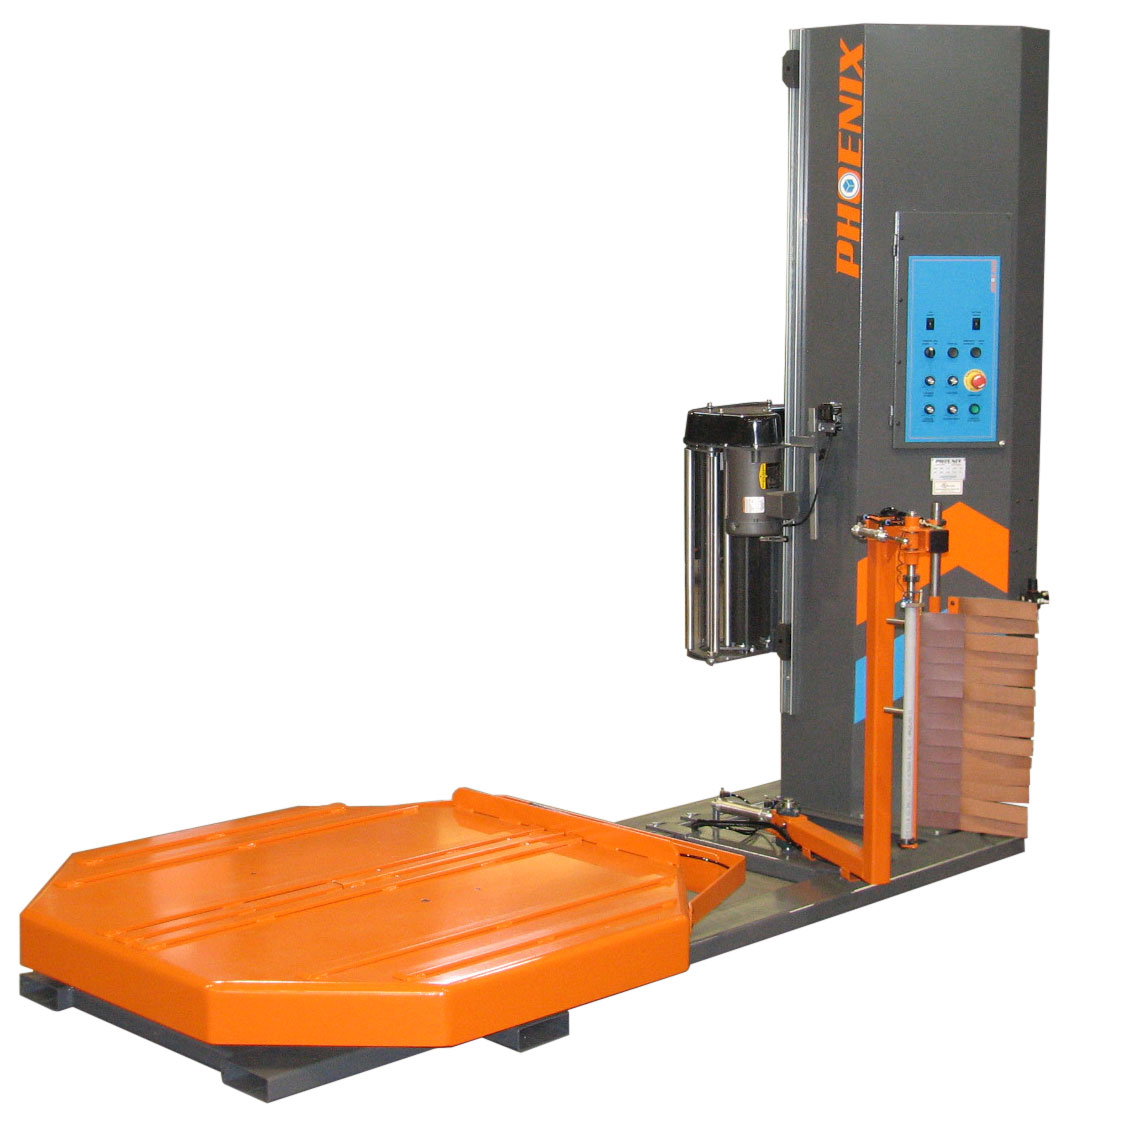 The PHPA Pallet Wrapper Is Designed Specifically For Forklift Use